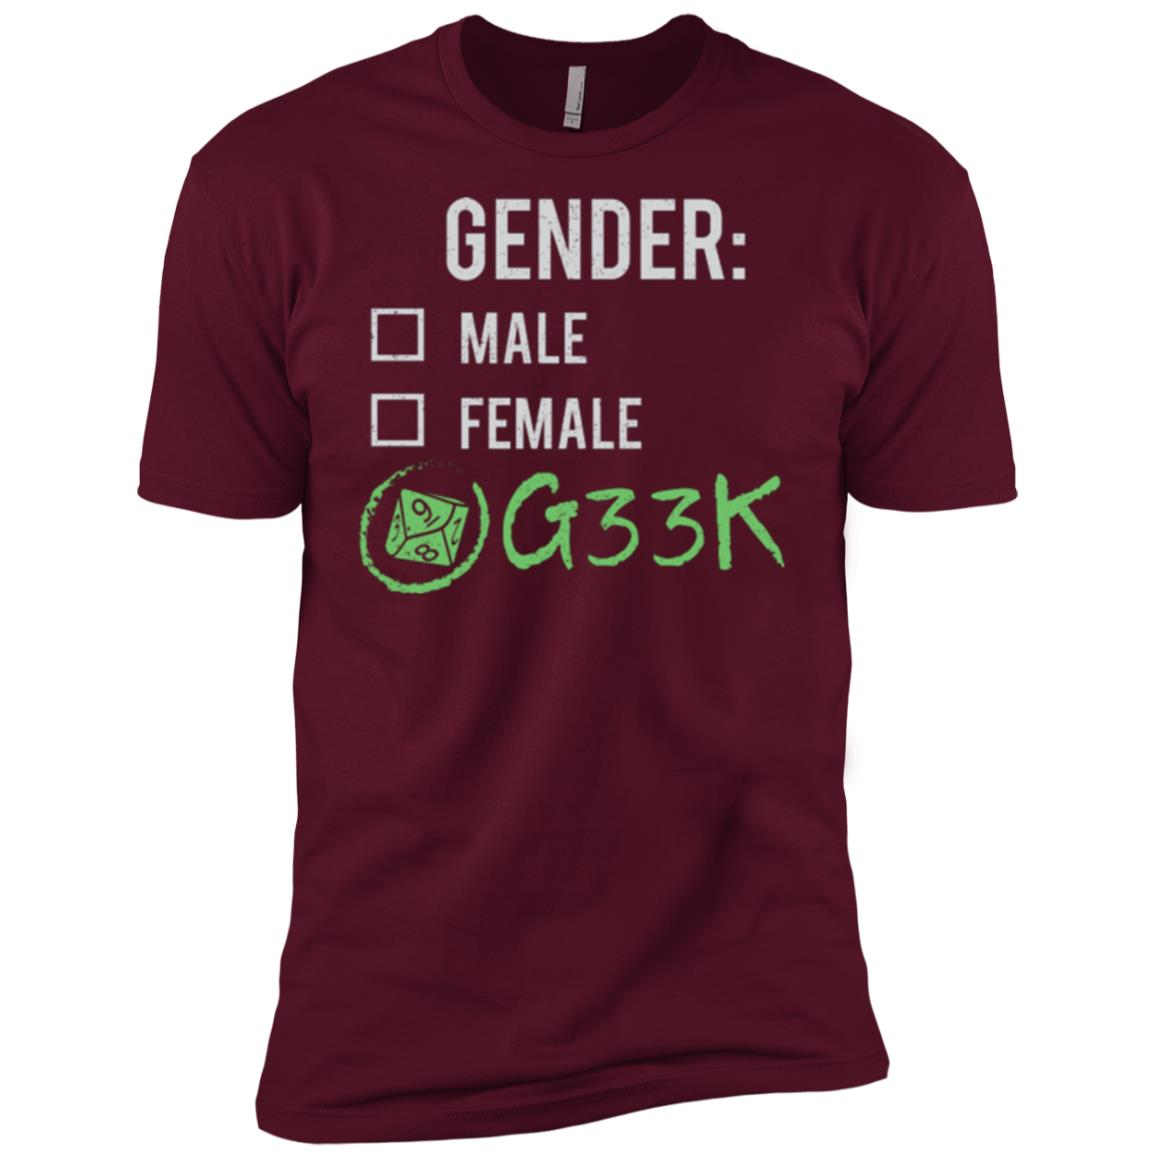 Male Female Geek (Dice) Gender Nonbinary Trans Men Short Sleeve T-Shirt